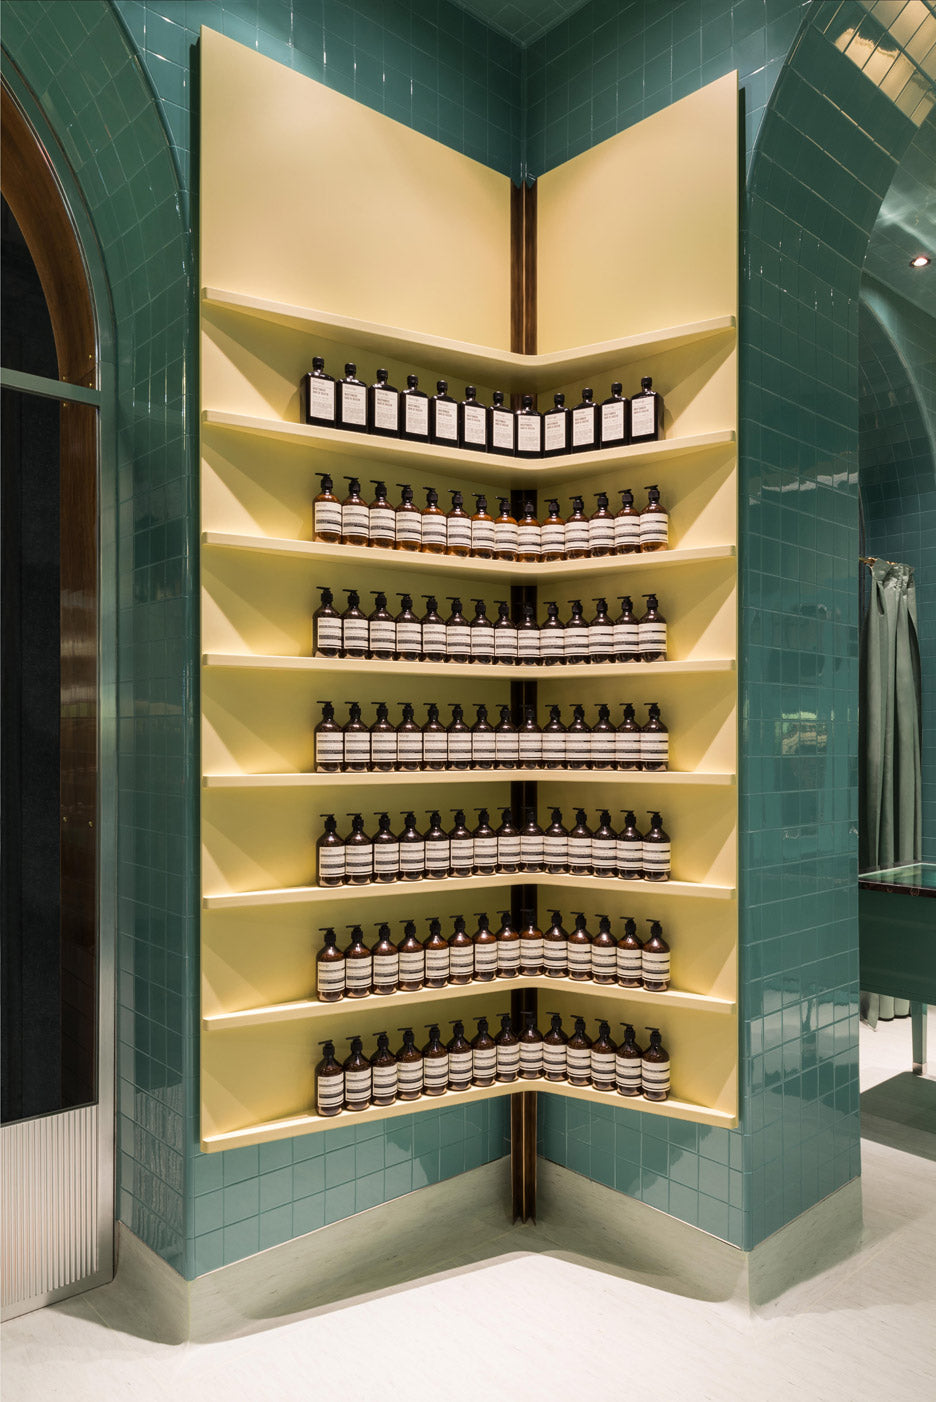 Aesop display in their Milan store yellow against green tiles